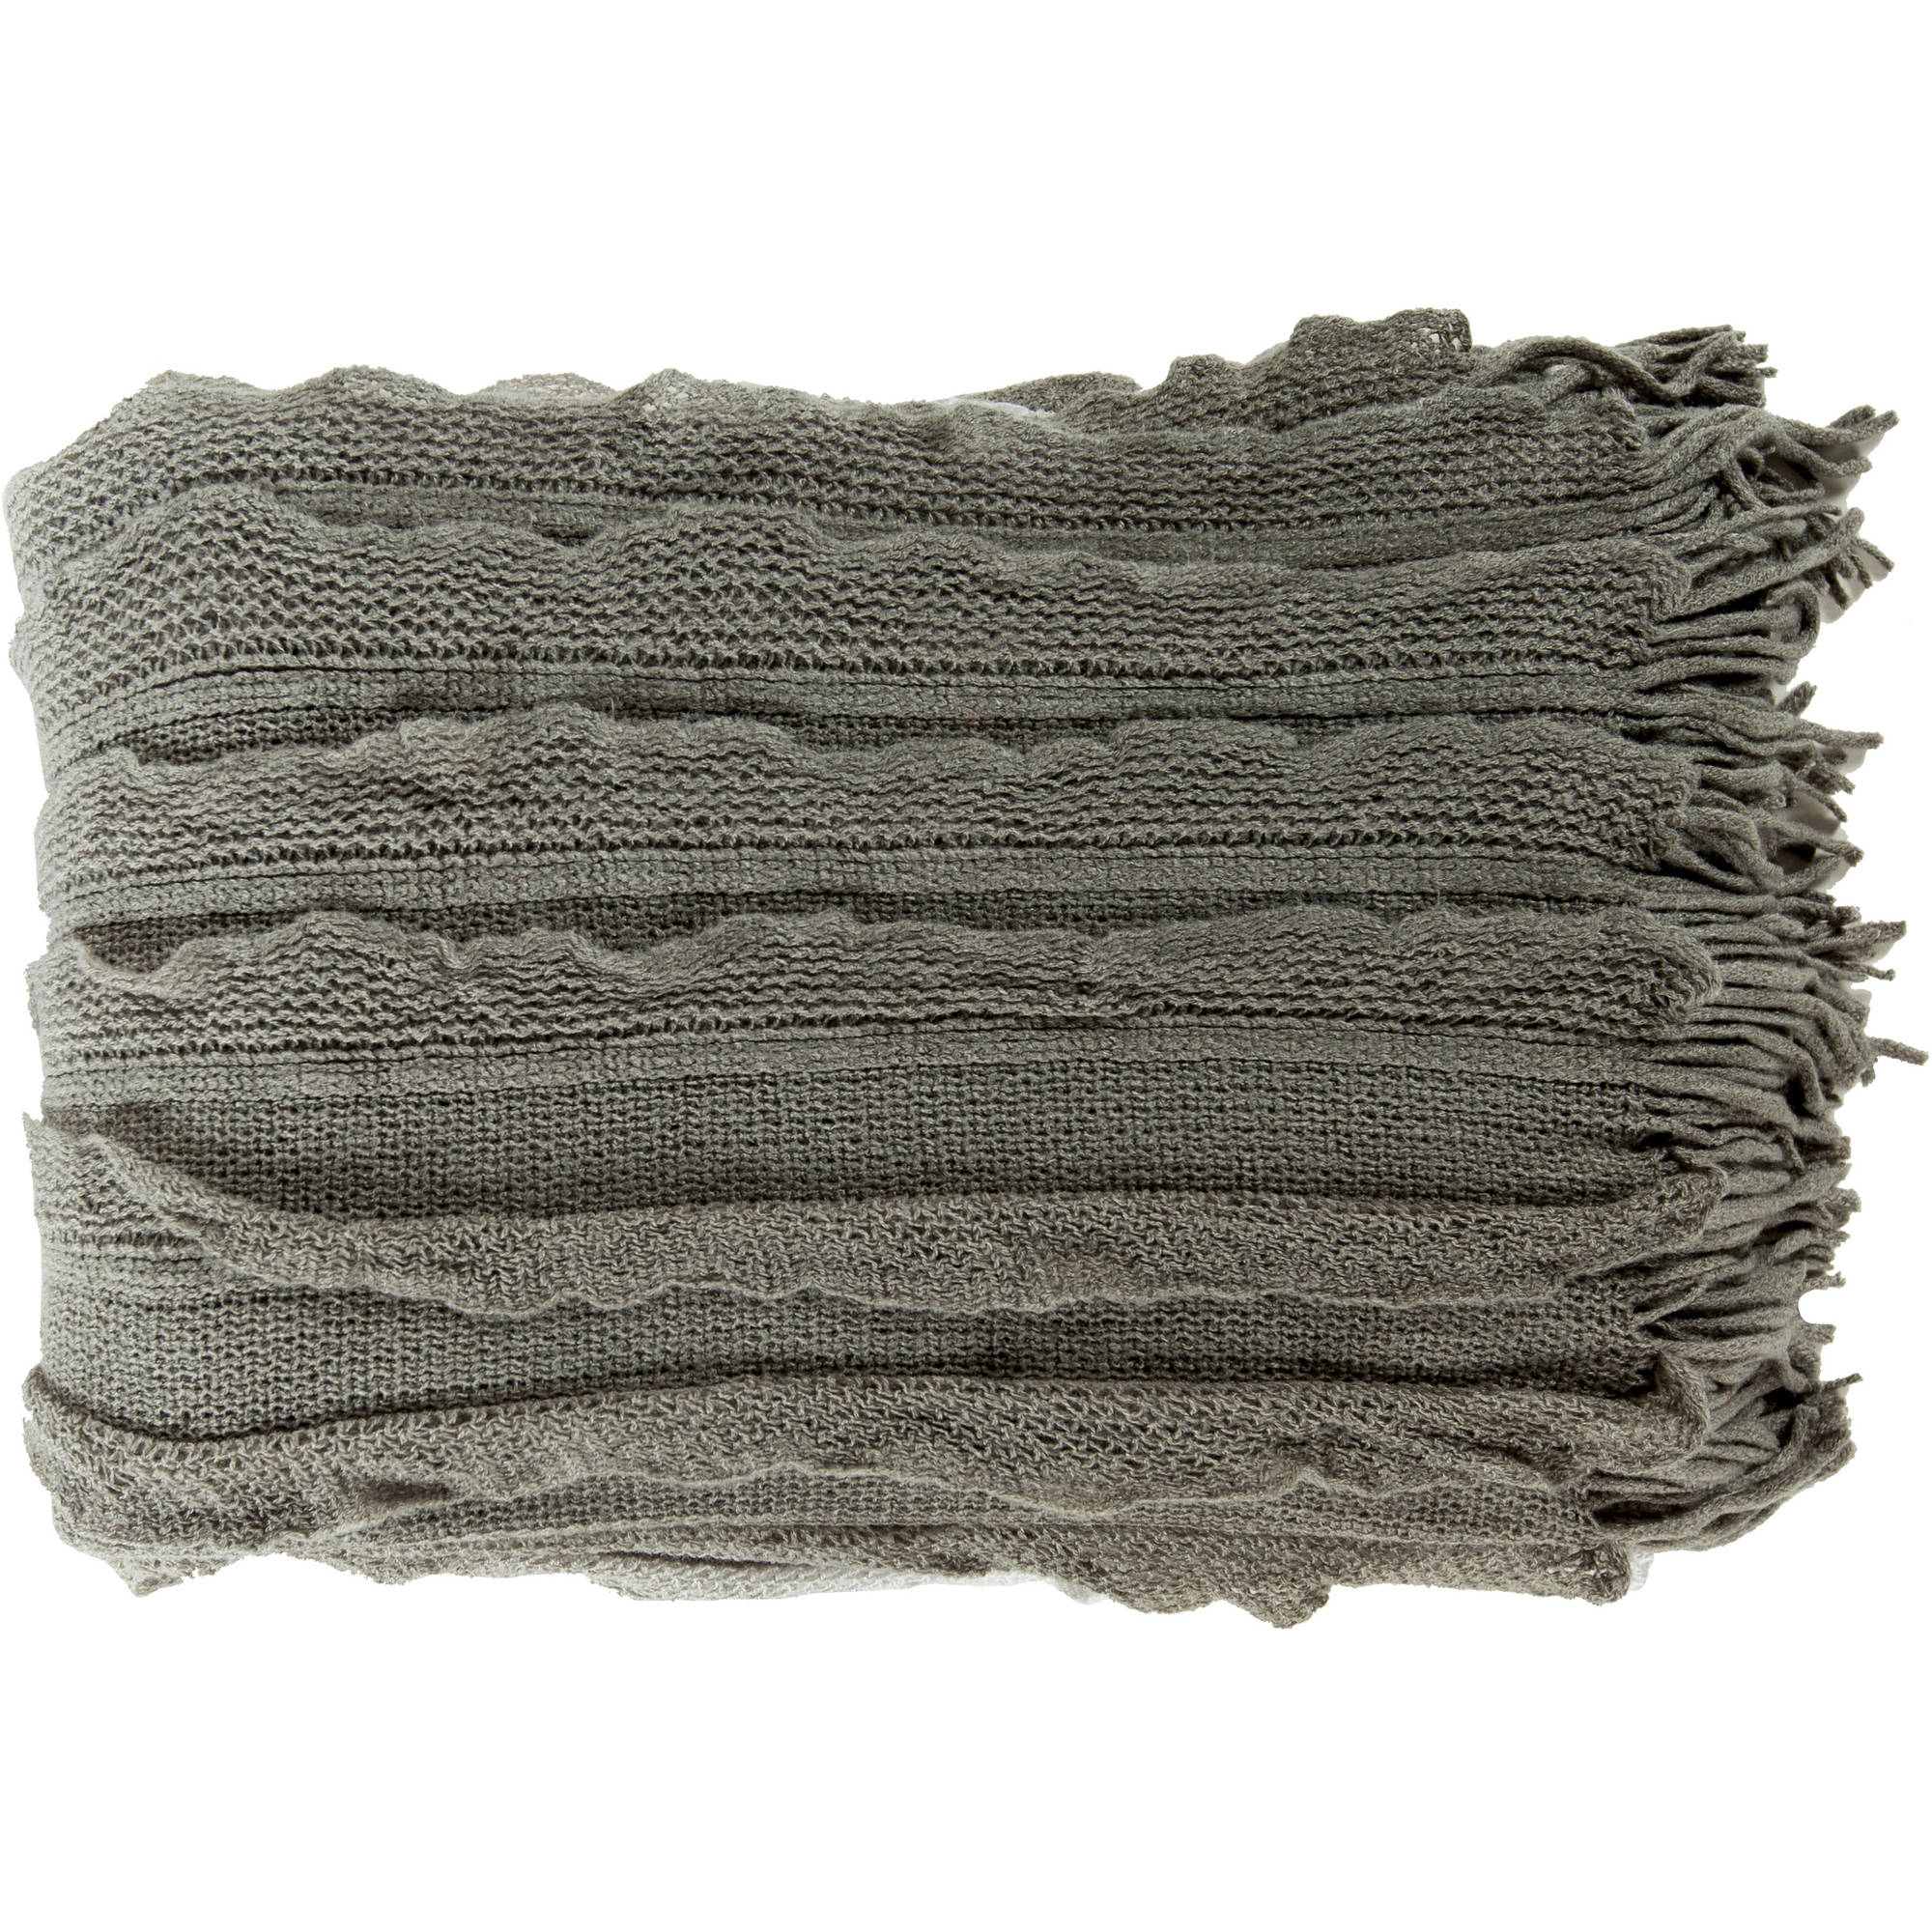 Libby Langdon Ombre Panel Hand Crafted Decorative Throw, Ash